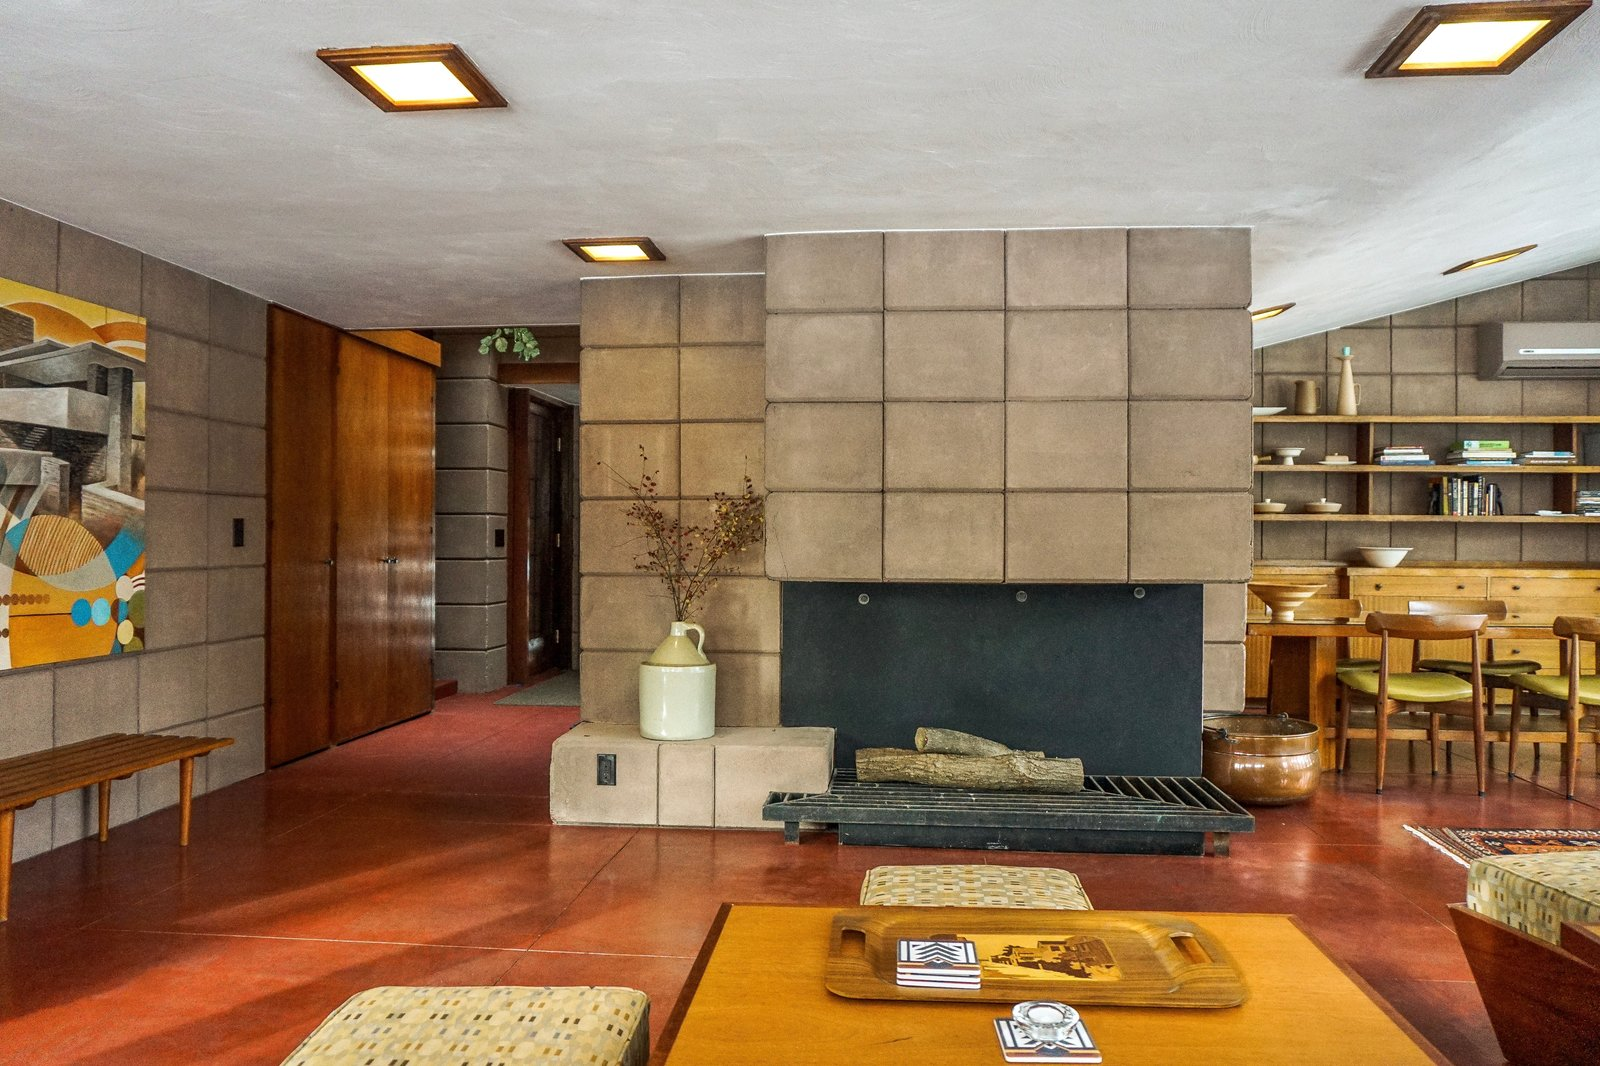 Living Room, Ceiling Lighting, Standard Layout Fireplace, Concrete Floor, Ottomans, Bench, Coffee Tables, and Wood Burning Fireplace Living and dining spaces wrap around the full-height fireplace.  Original light fixtures remain and have been outfitted with LED lights.  Frank Lloyd Wright's Eppstein House from You Can Now Rent Frank Lloyd Wright's Gloriously Restored Eppstein House